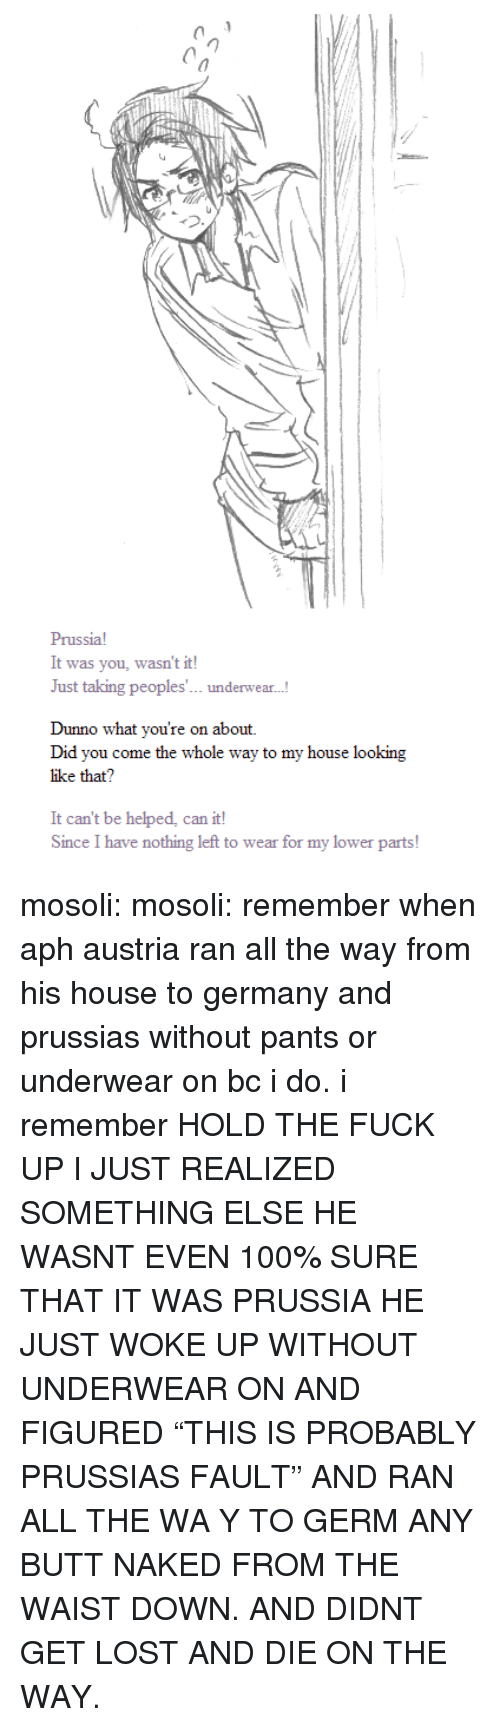 """Anaconda, Butt, and My House: Prussia!  It was you, wasn't it!  J  ust taking peoples... und  erwear...  Dunno what you're on about.  Did you come the whole way to my house looking  like that?  It can't be helped, can it!  Since I have nothing left to wear for my lower parts mosoli:  mosoli:  remember when aph austria ran all the way from his house to germany and prussias without pants or underwear on bc i do. i remember  HOLD THE FUCK UP I JUST REALIZED SOMETHING ELSE HE WASNT EVEN 100% SURE THAT IT WAS PRUSSIA HE JUST WOKE UP WITHOUT UNDERWEAR ON AND FIGURED """"THIS IS PROBABLY PRUSSIAS FAULT"""" AND RAN ALL THE WA Y TO GERM ANY BUTT NAKED FROM THE WAIST DOWN. AND DIDNT GET LOST AND DIE ON THE WAY."""